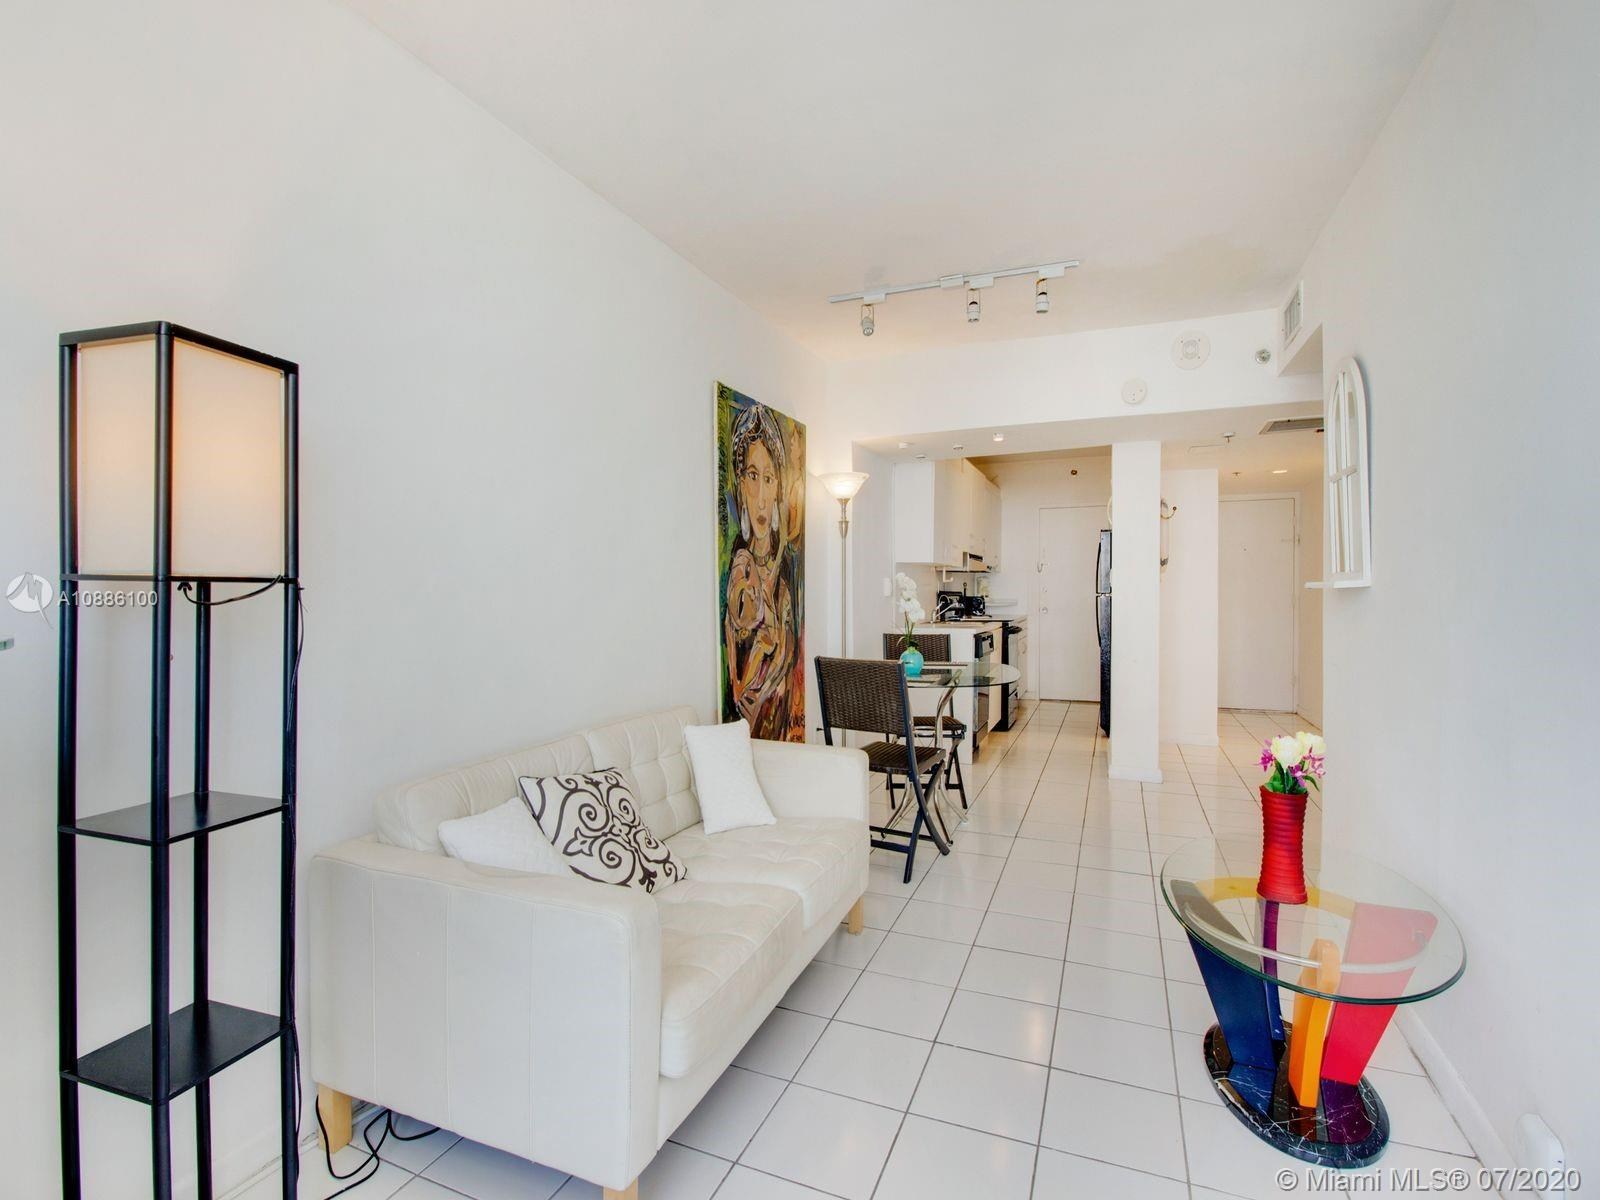 100 Lincoln Rd # 539, Miami Beach, Florida 33139, 1 Bedroom Bedrooms, ,1 BathroomBathrooms,Residential,For Sale,100 Lincoln Rd # 539,A10886100